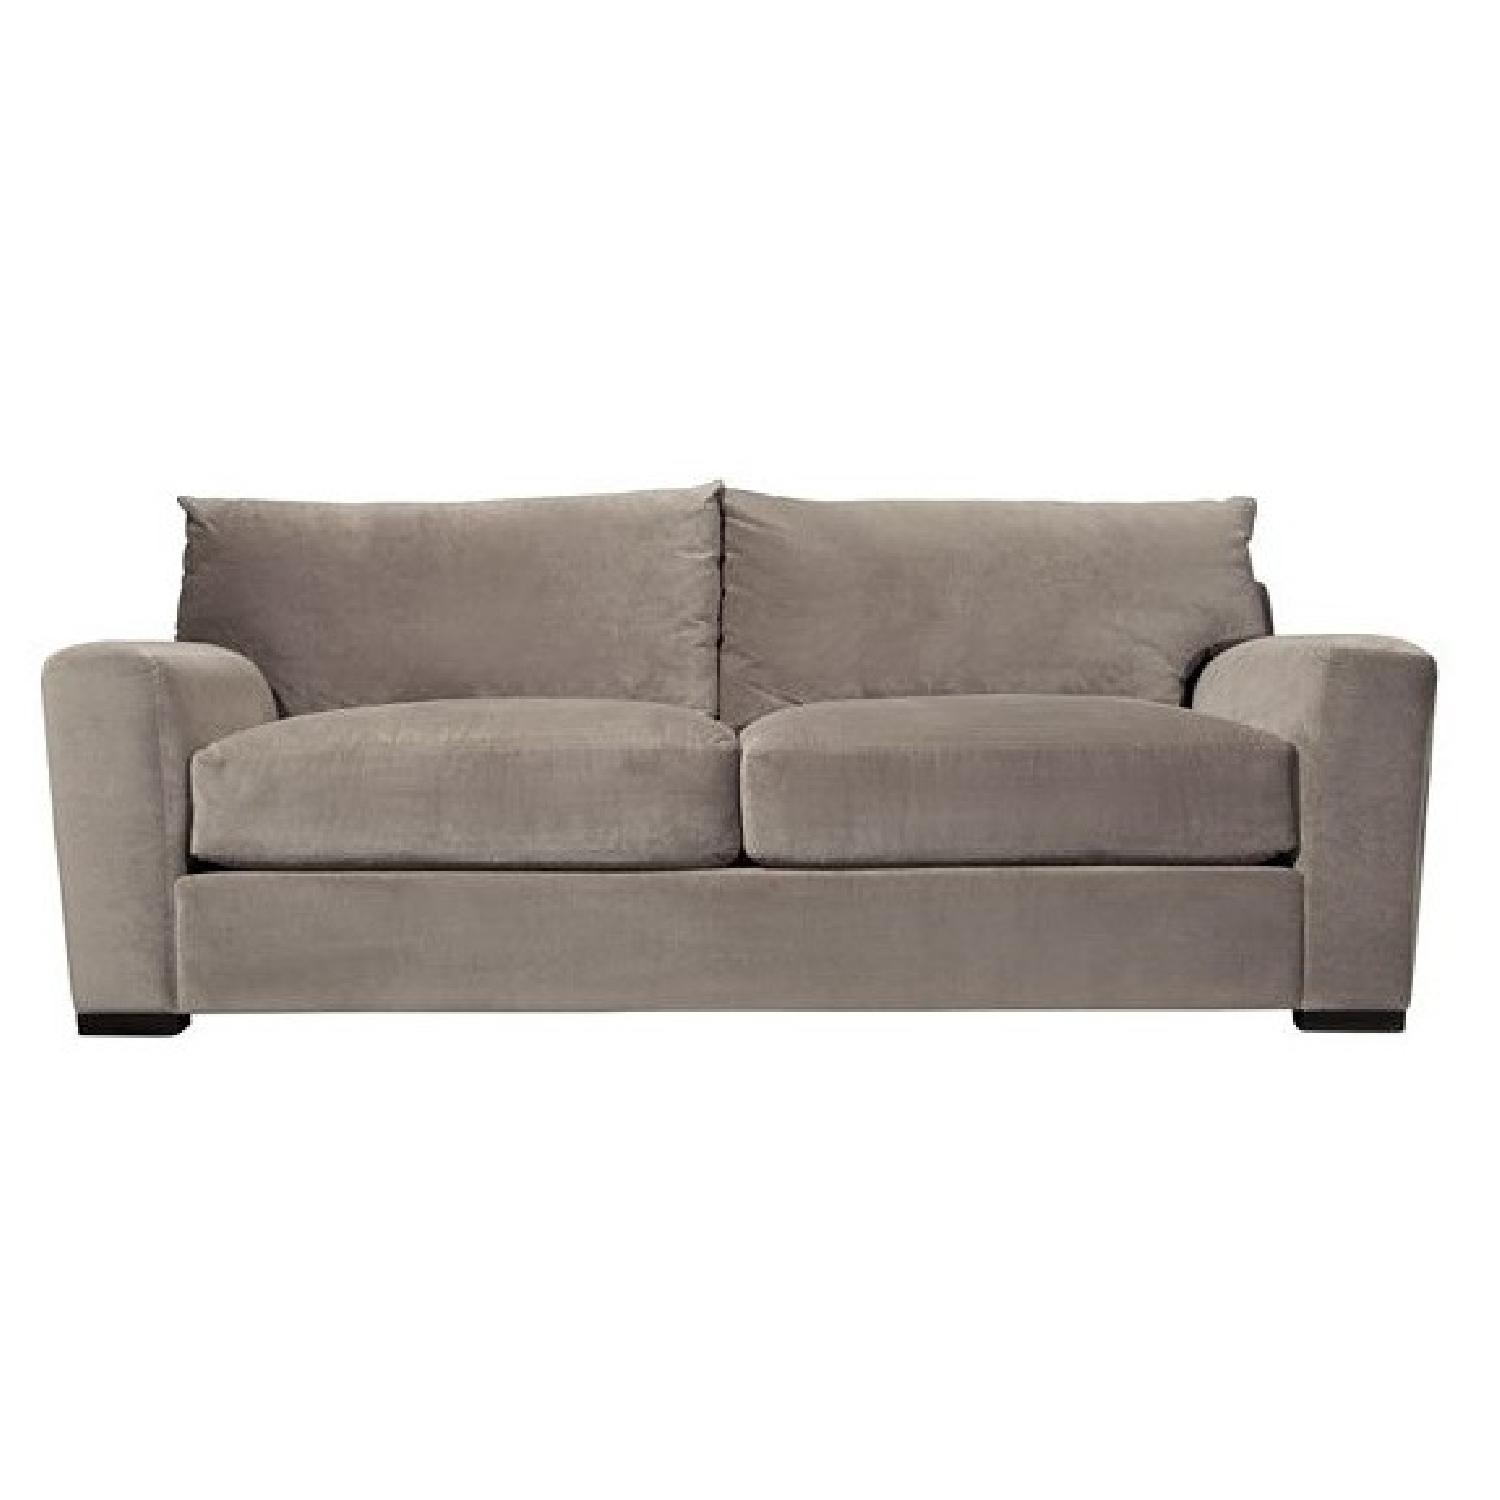 Raymour & Flanigan Carlin Microfiber Sofa + Chair - image-0